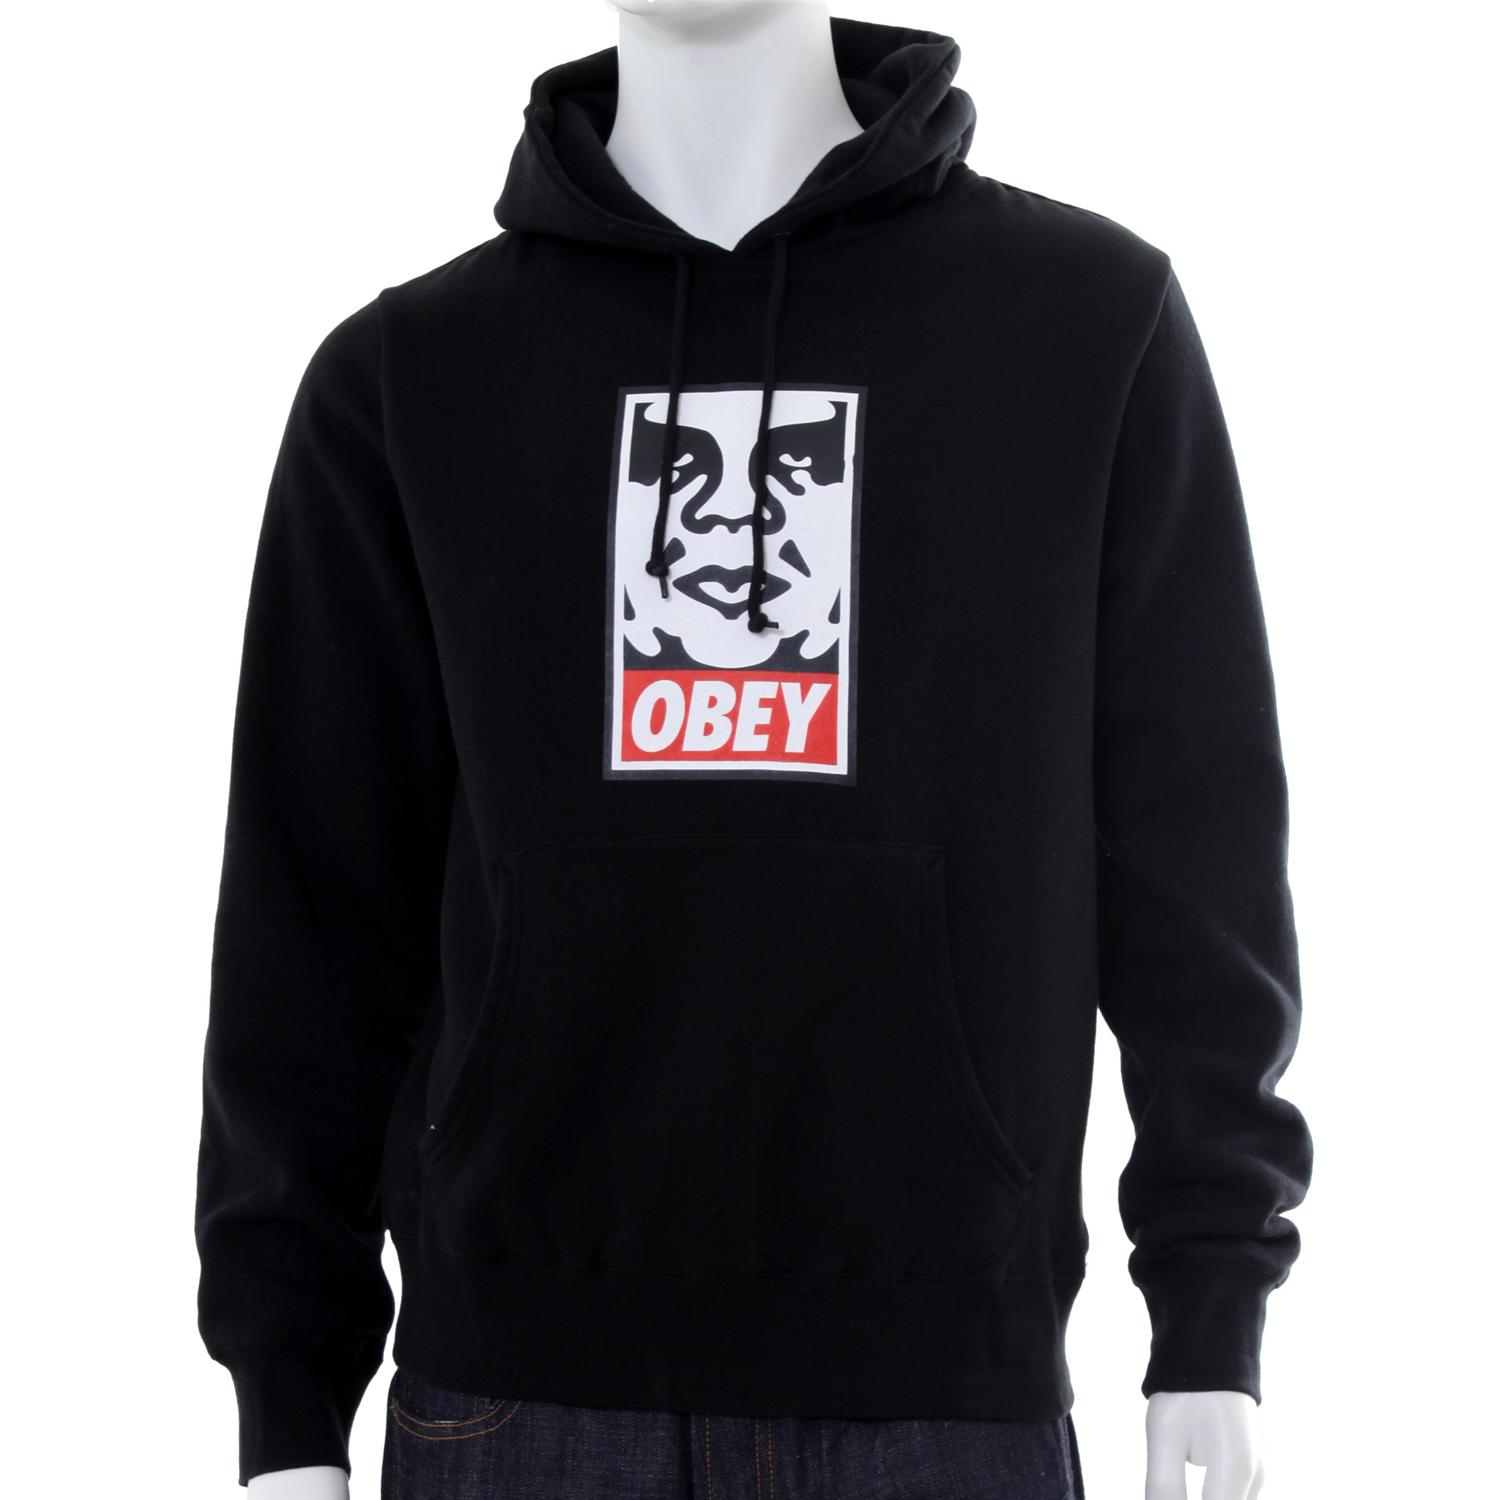 shop all obey clothing sale obey clothing lowest price guarantee